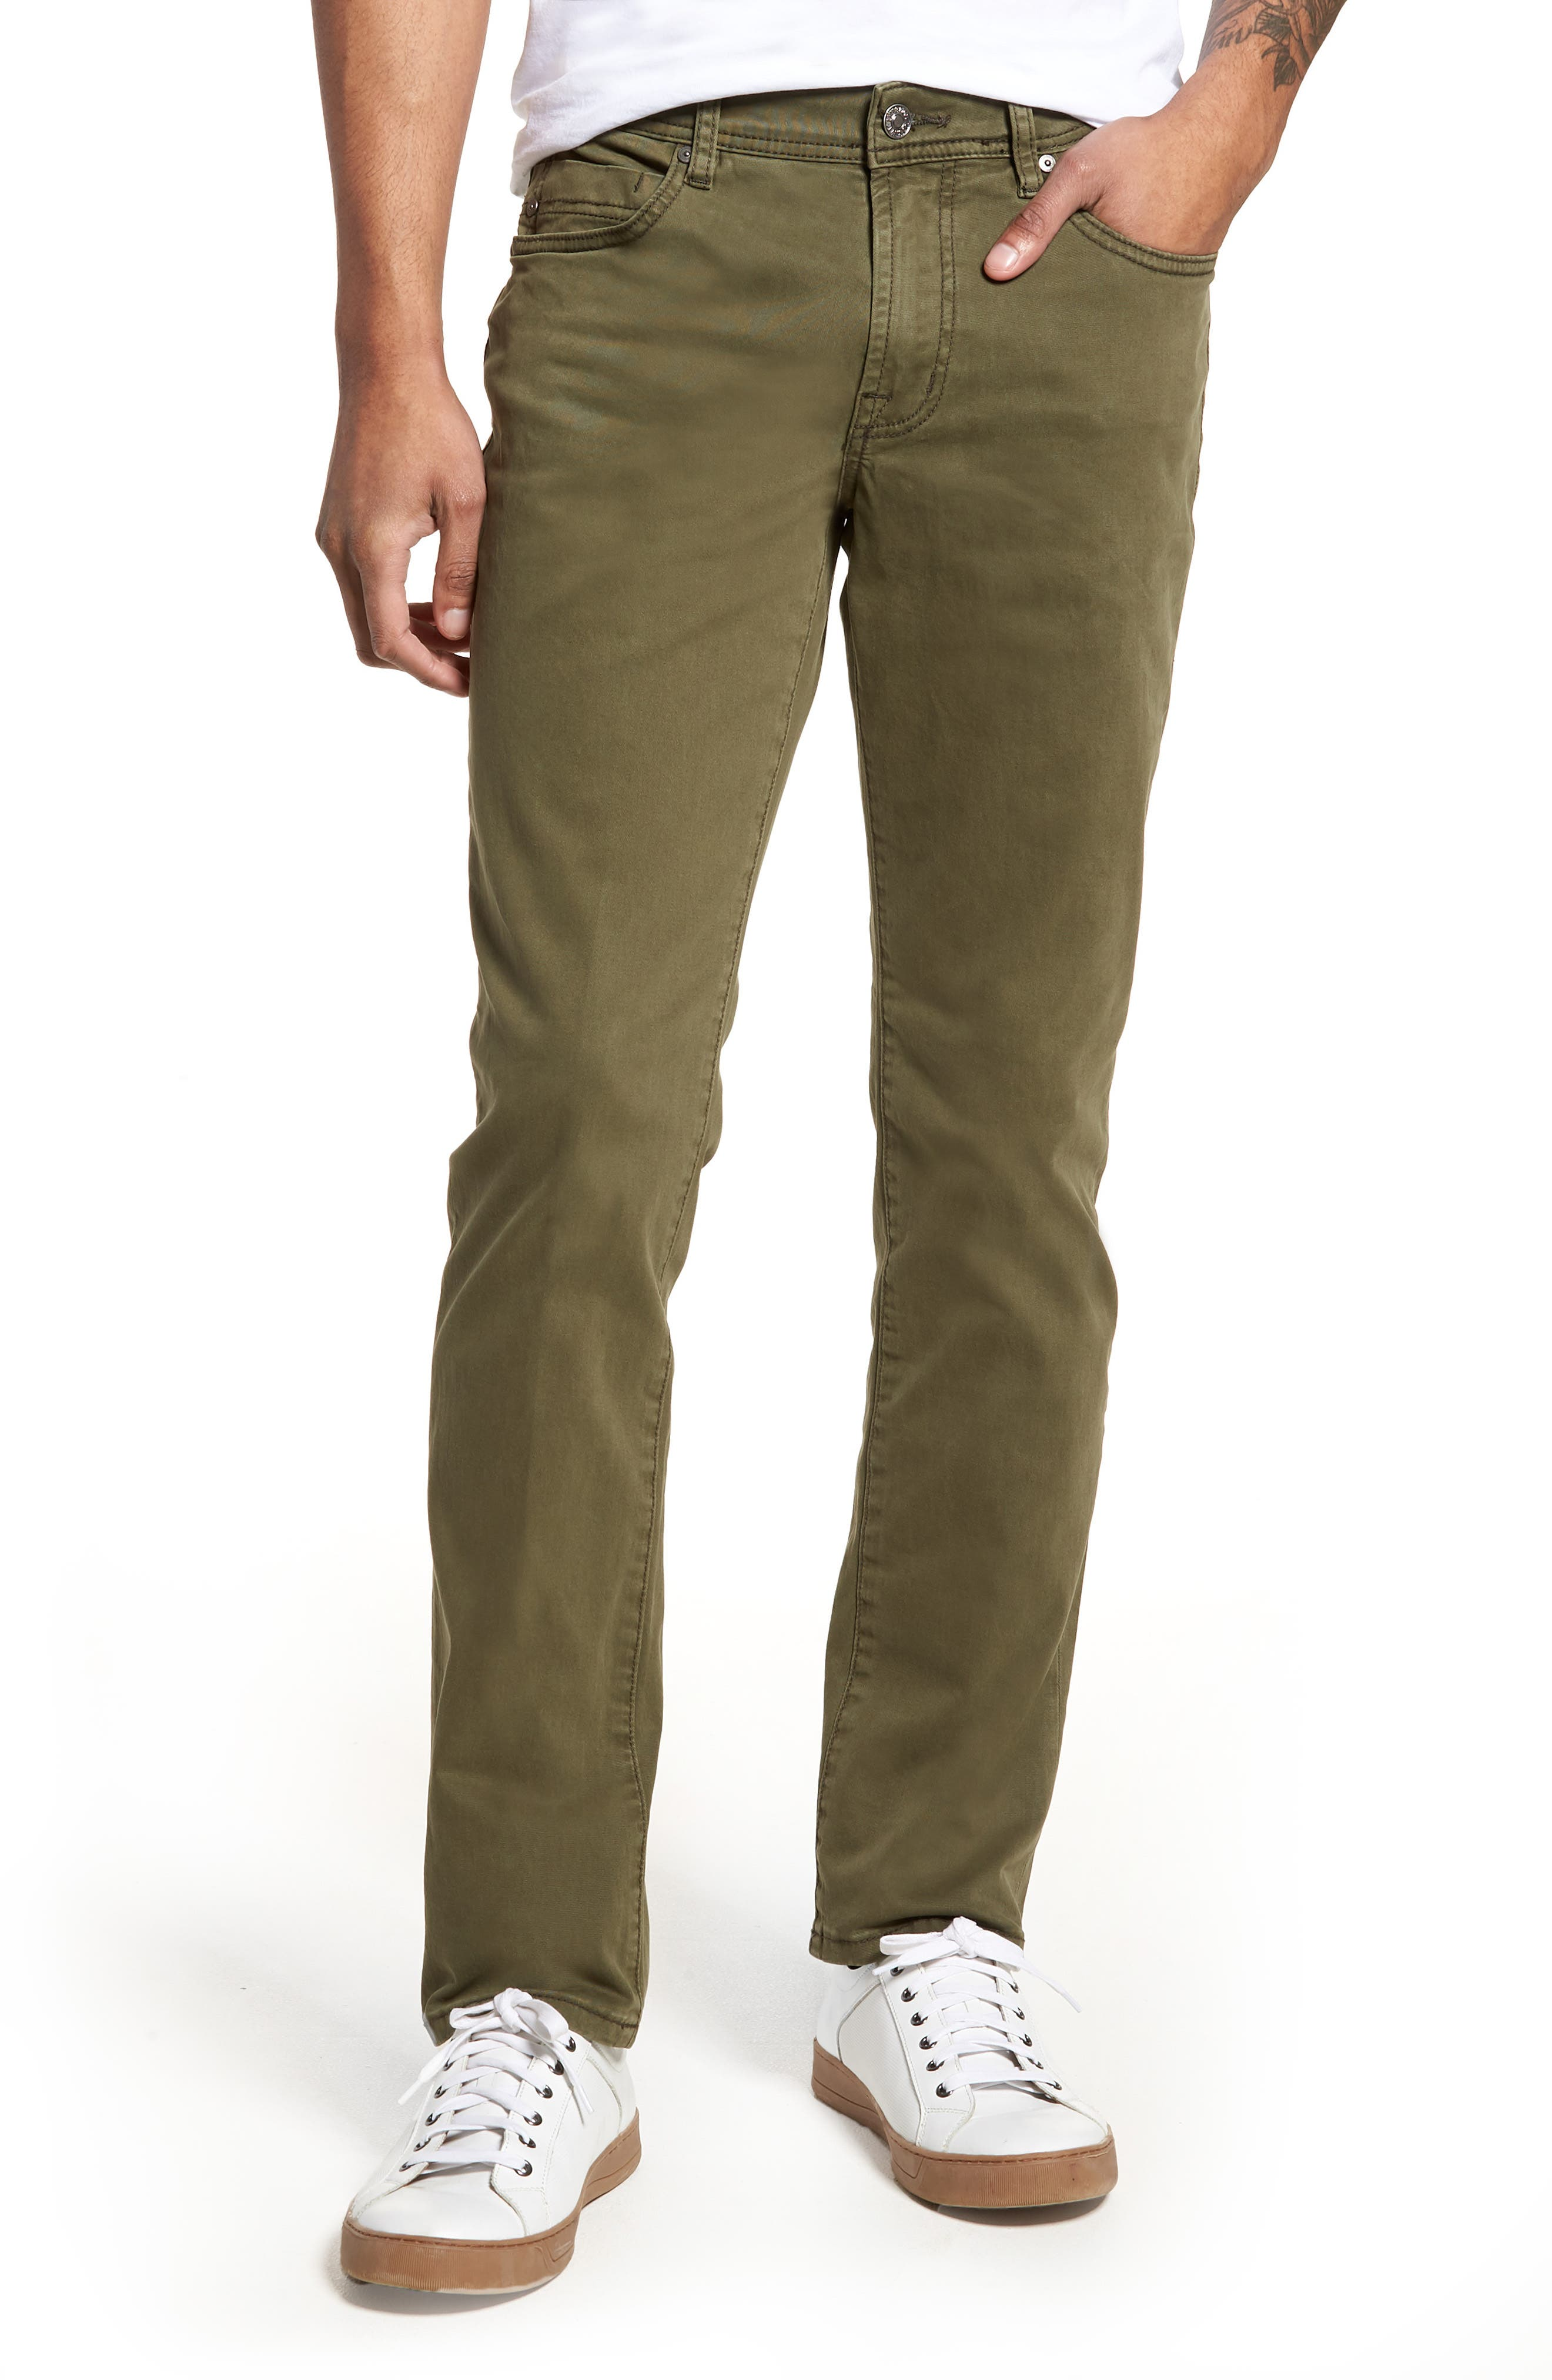 Liverpool Jeans Co. Kingston Slim Straight Leg Jeans (Olive Night)